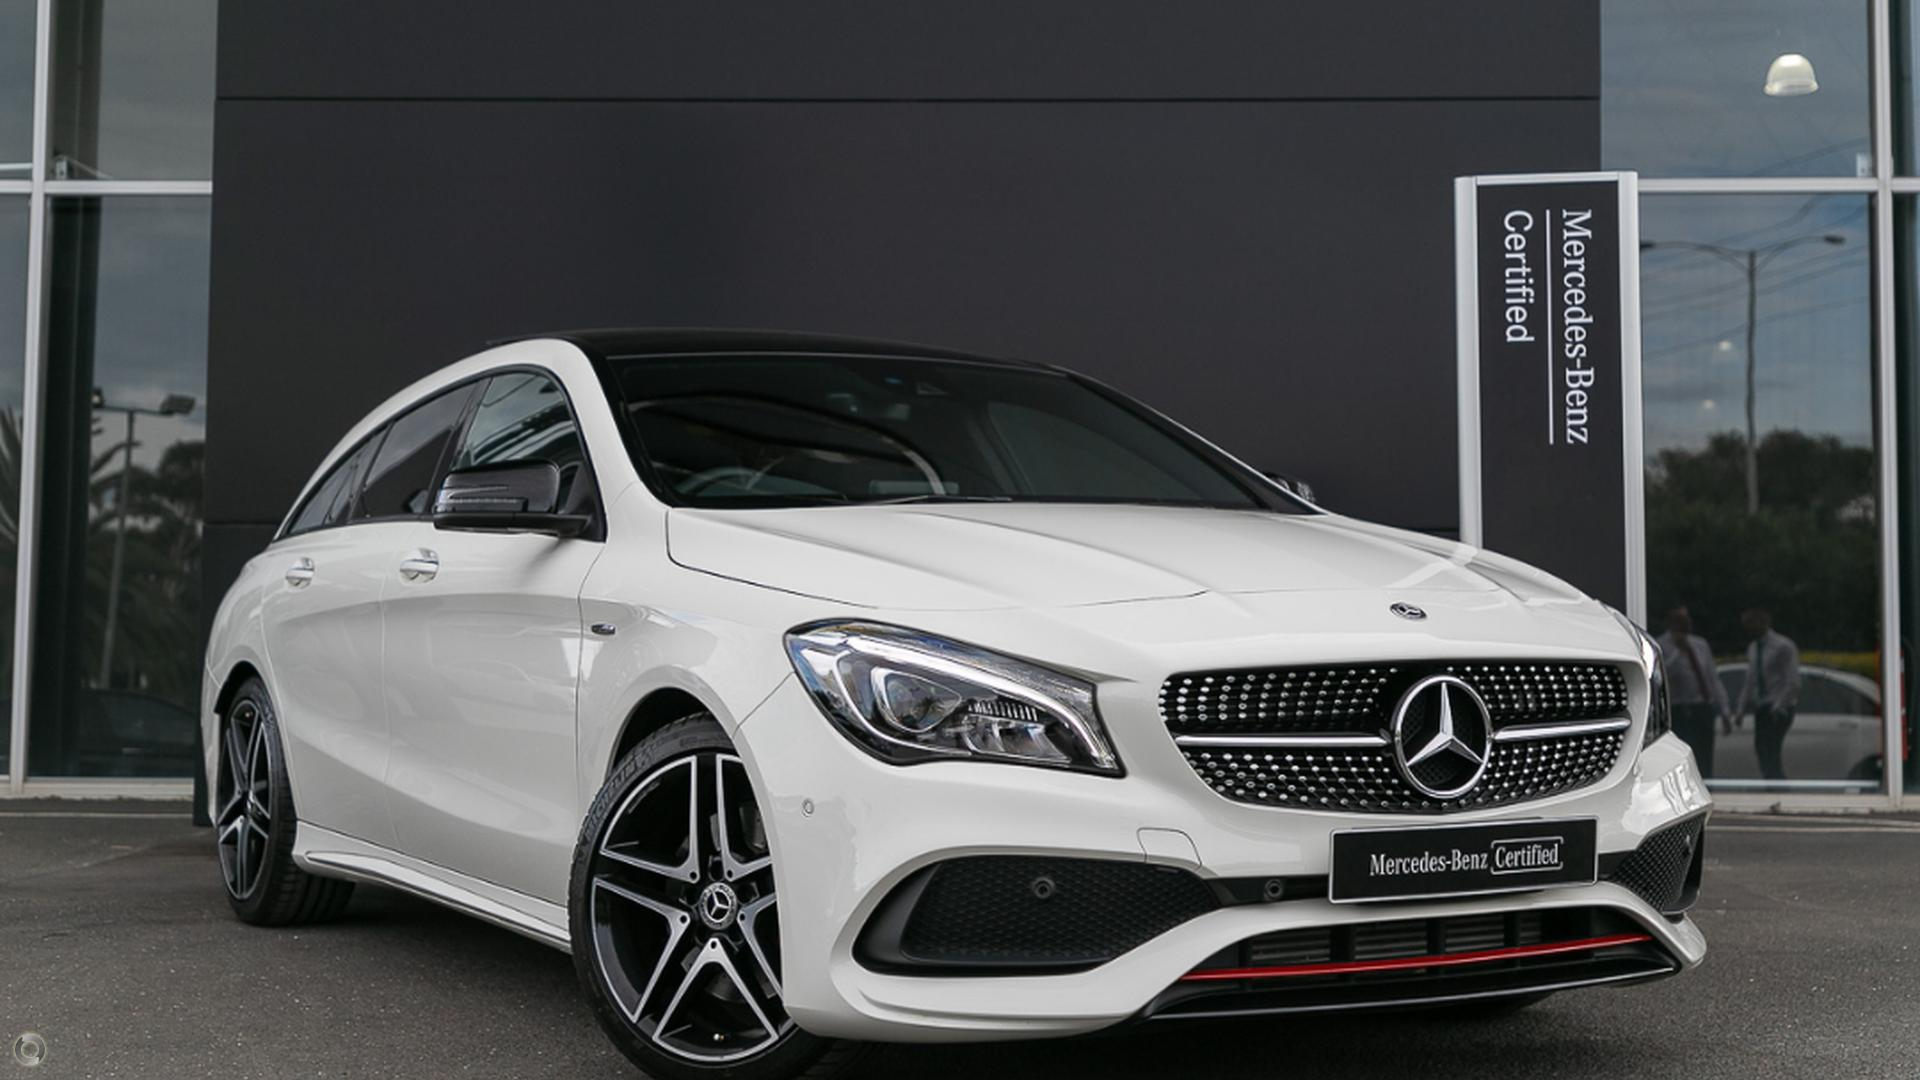 2017 Mercedes-Benz CLA 250 Shooting Brake